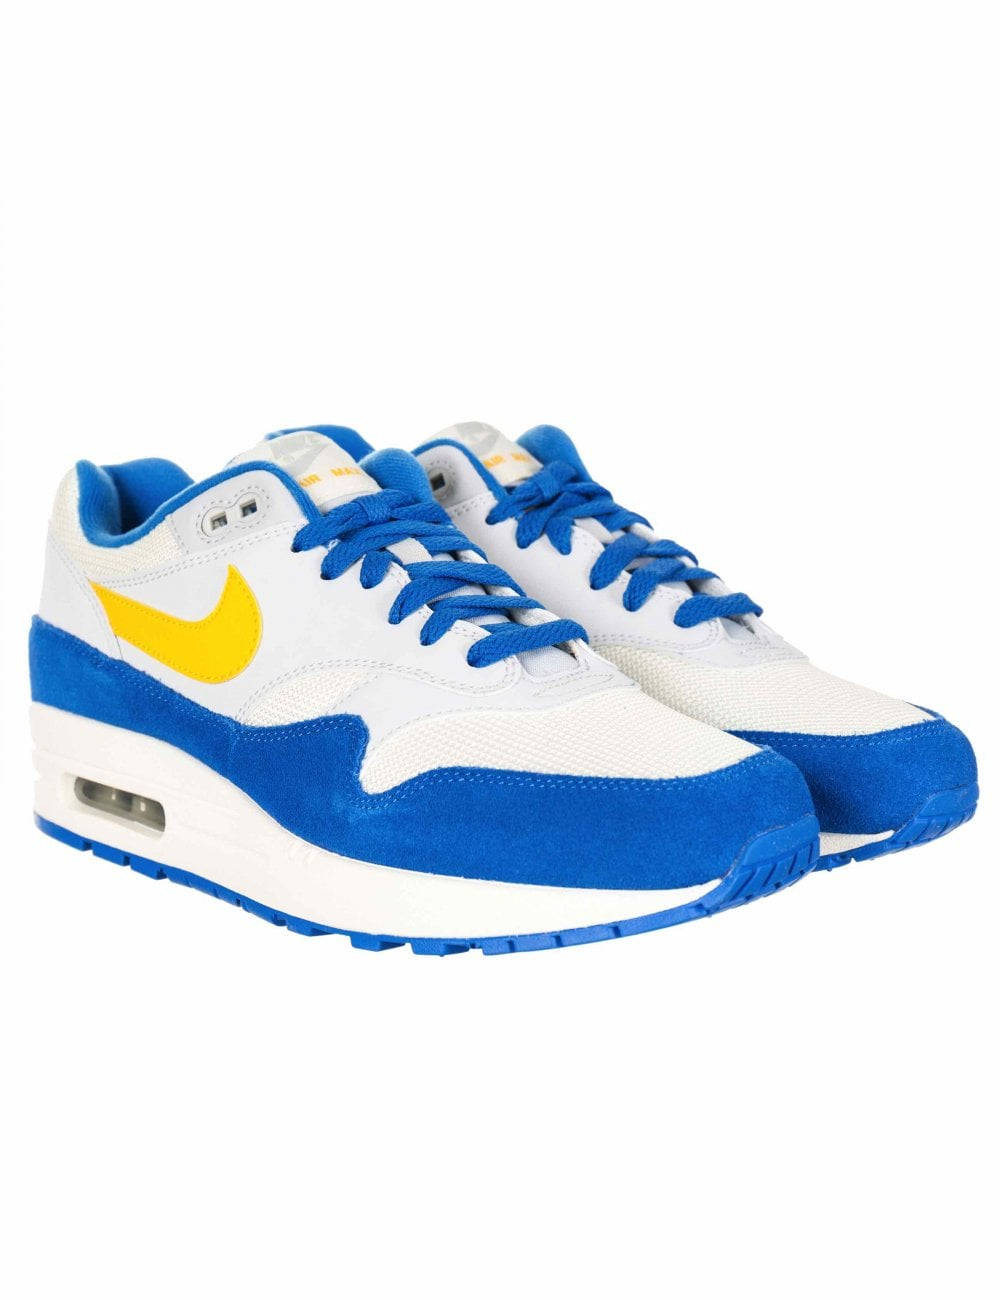 Nike Air Max 1 amarillo